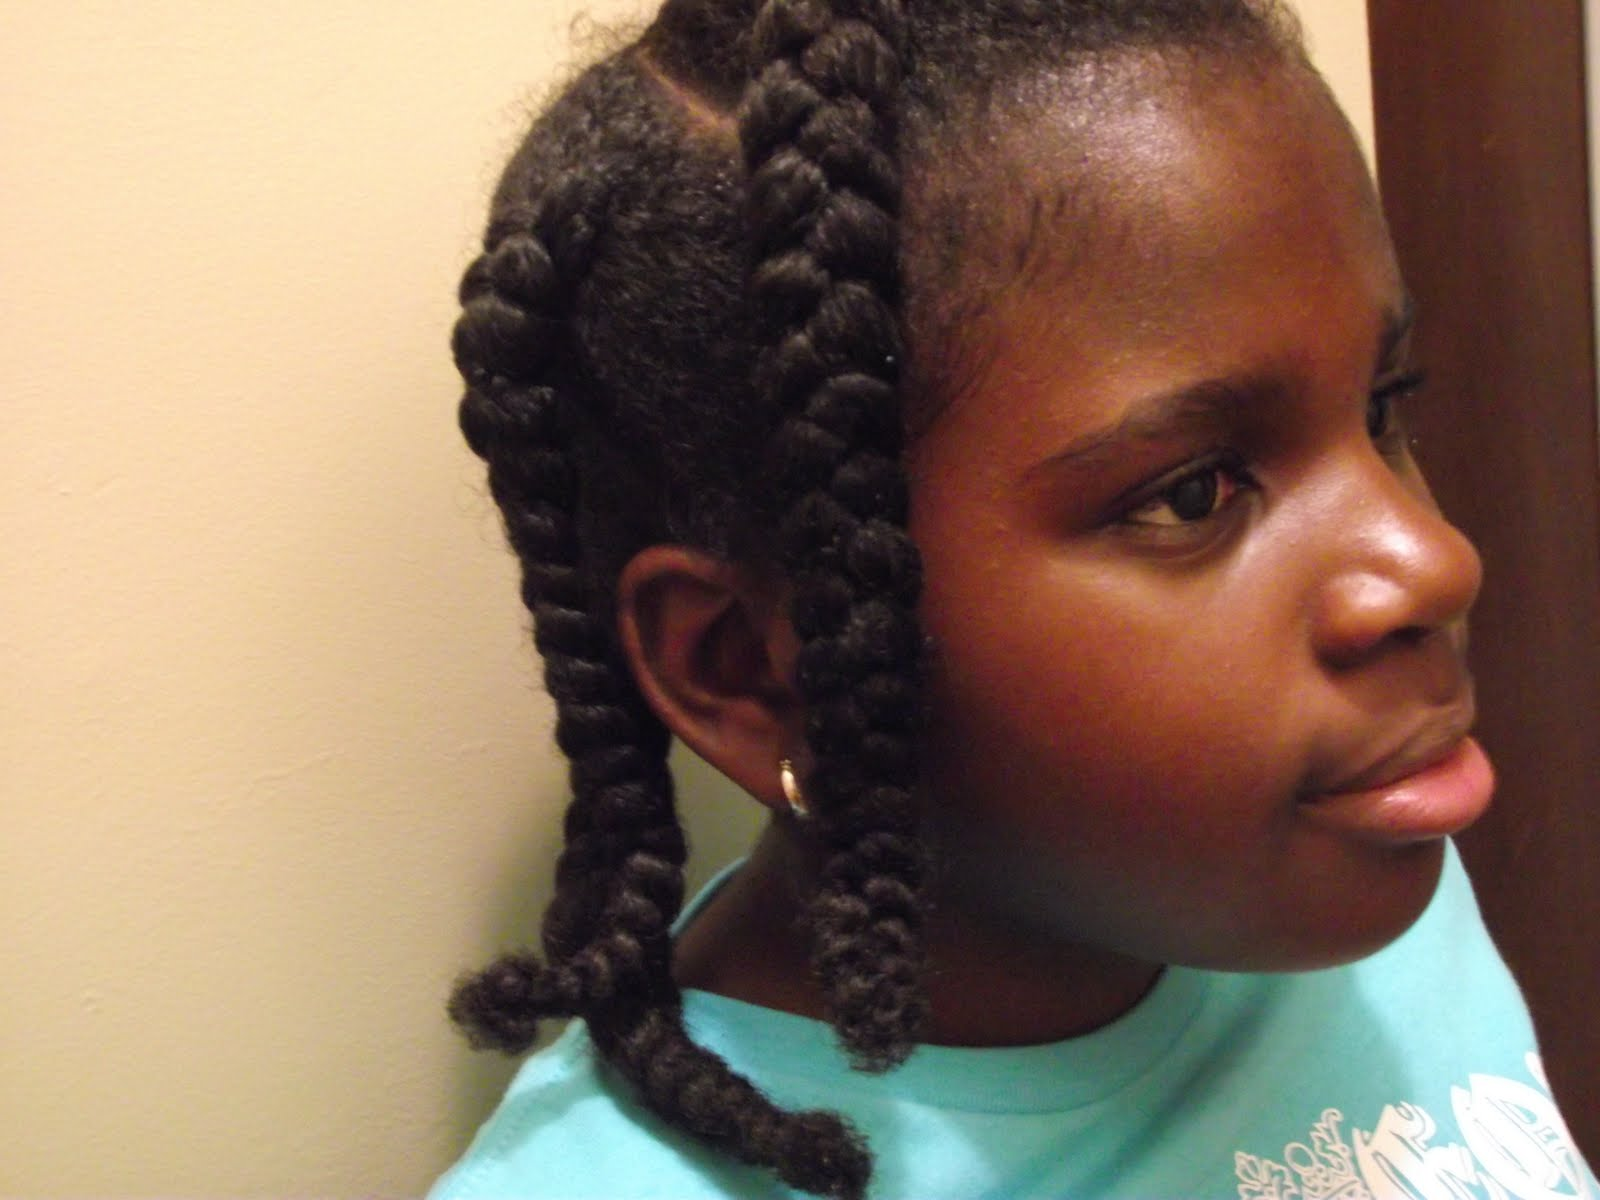 Braided hairstyles for girls with natural hair behairstyles braided hairstyles for girls with natural hair urmus Image collections